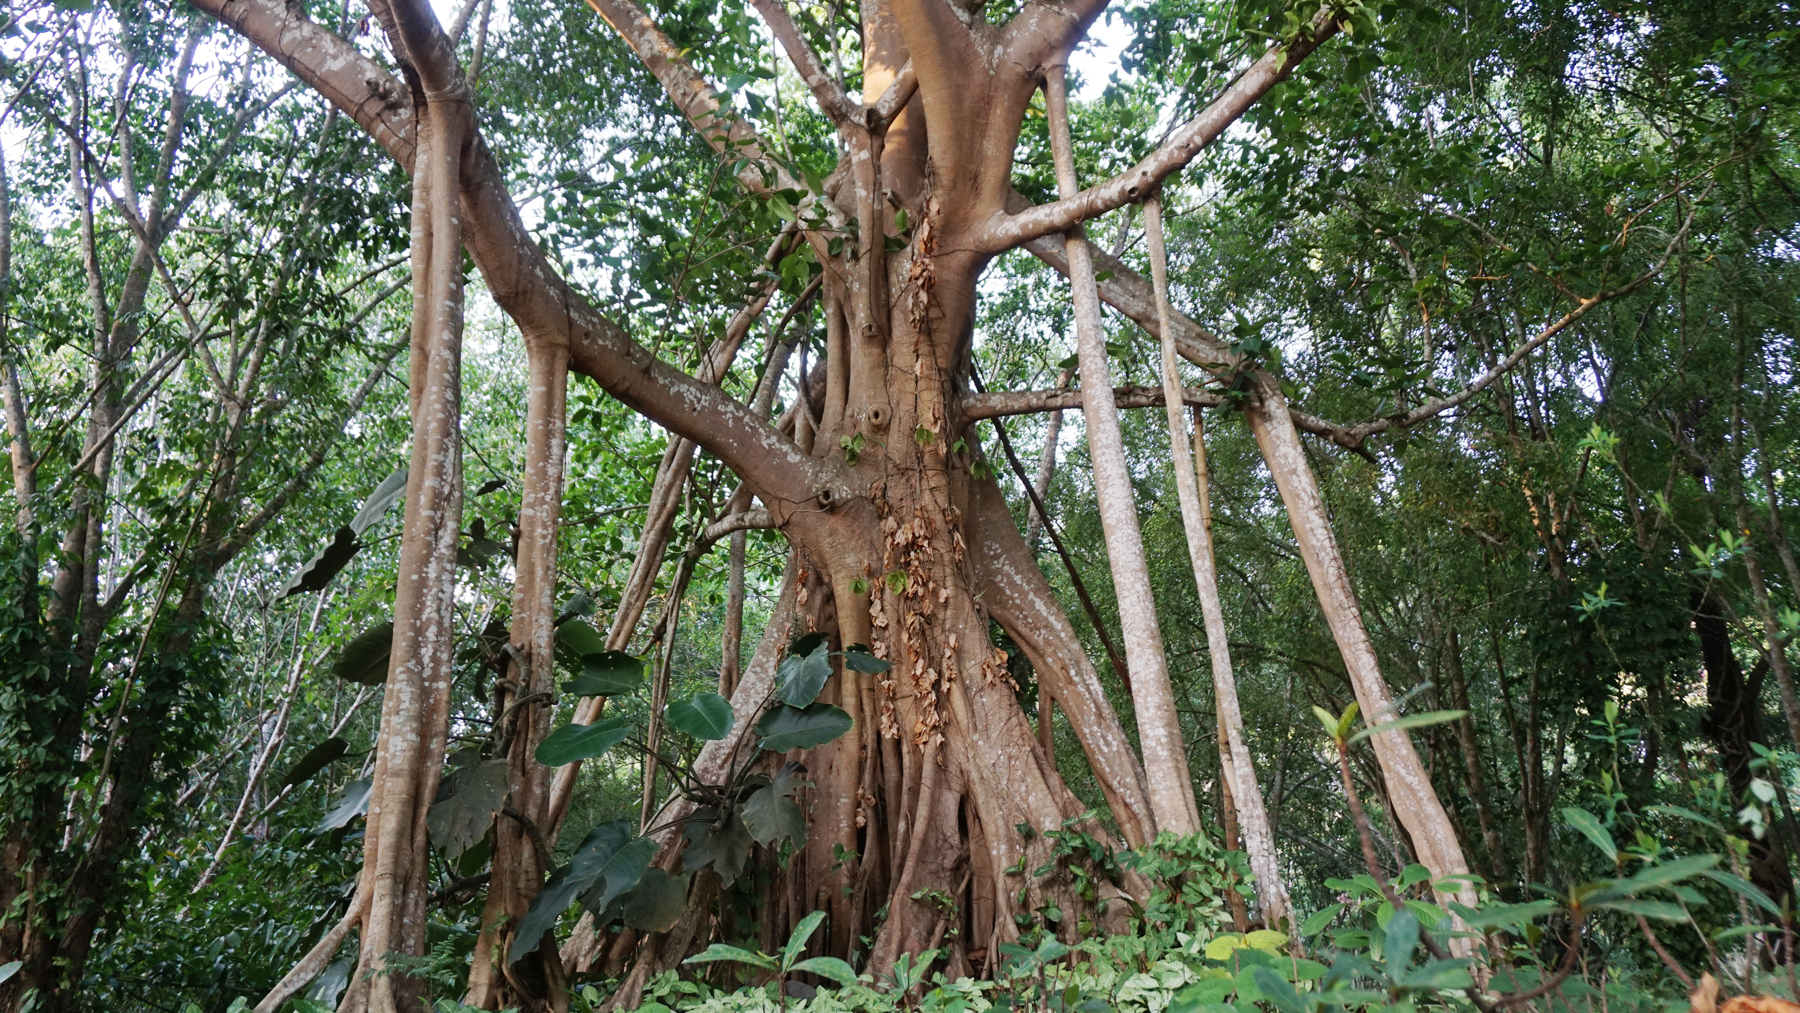 The banyan tree Ficus macrocarpa produces aerial roots that give it its distinctive look.Photo by Gang Wang